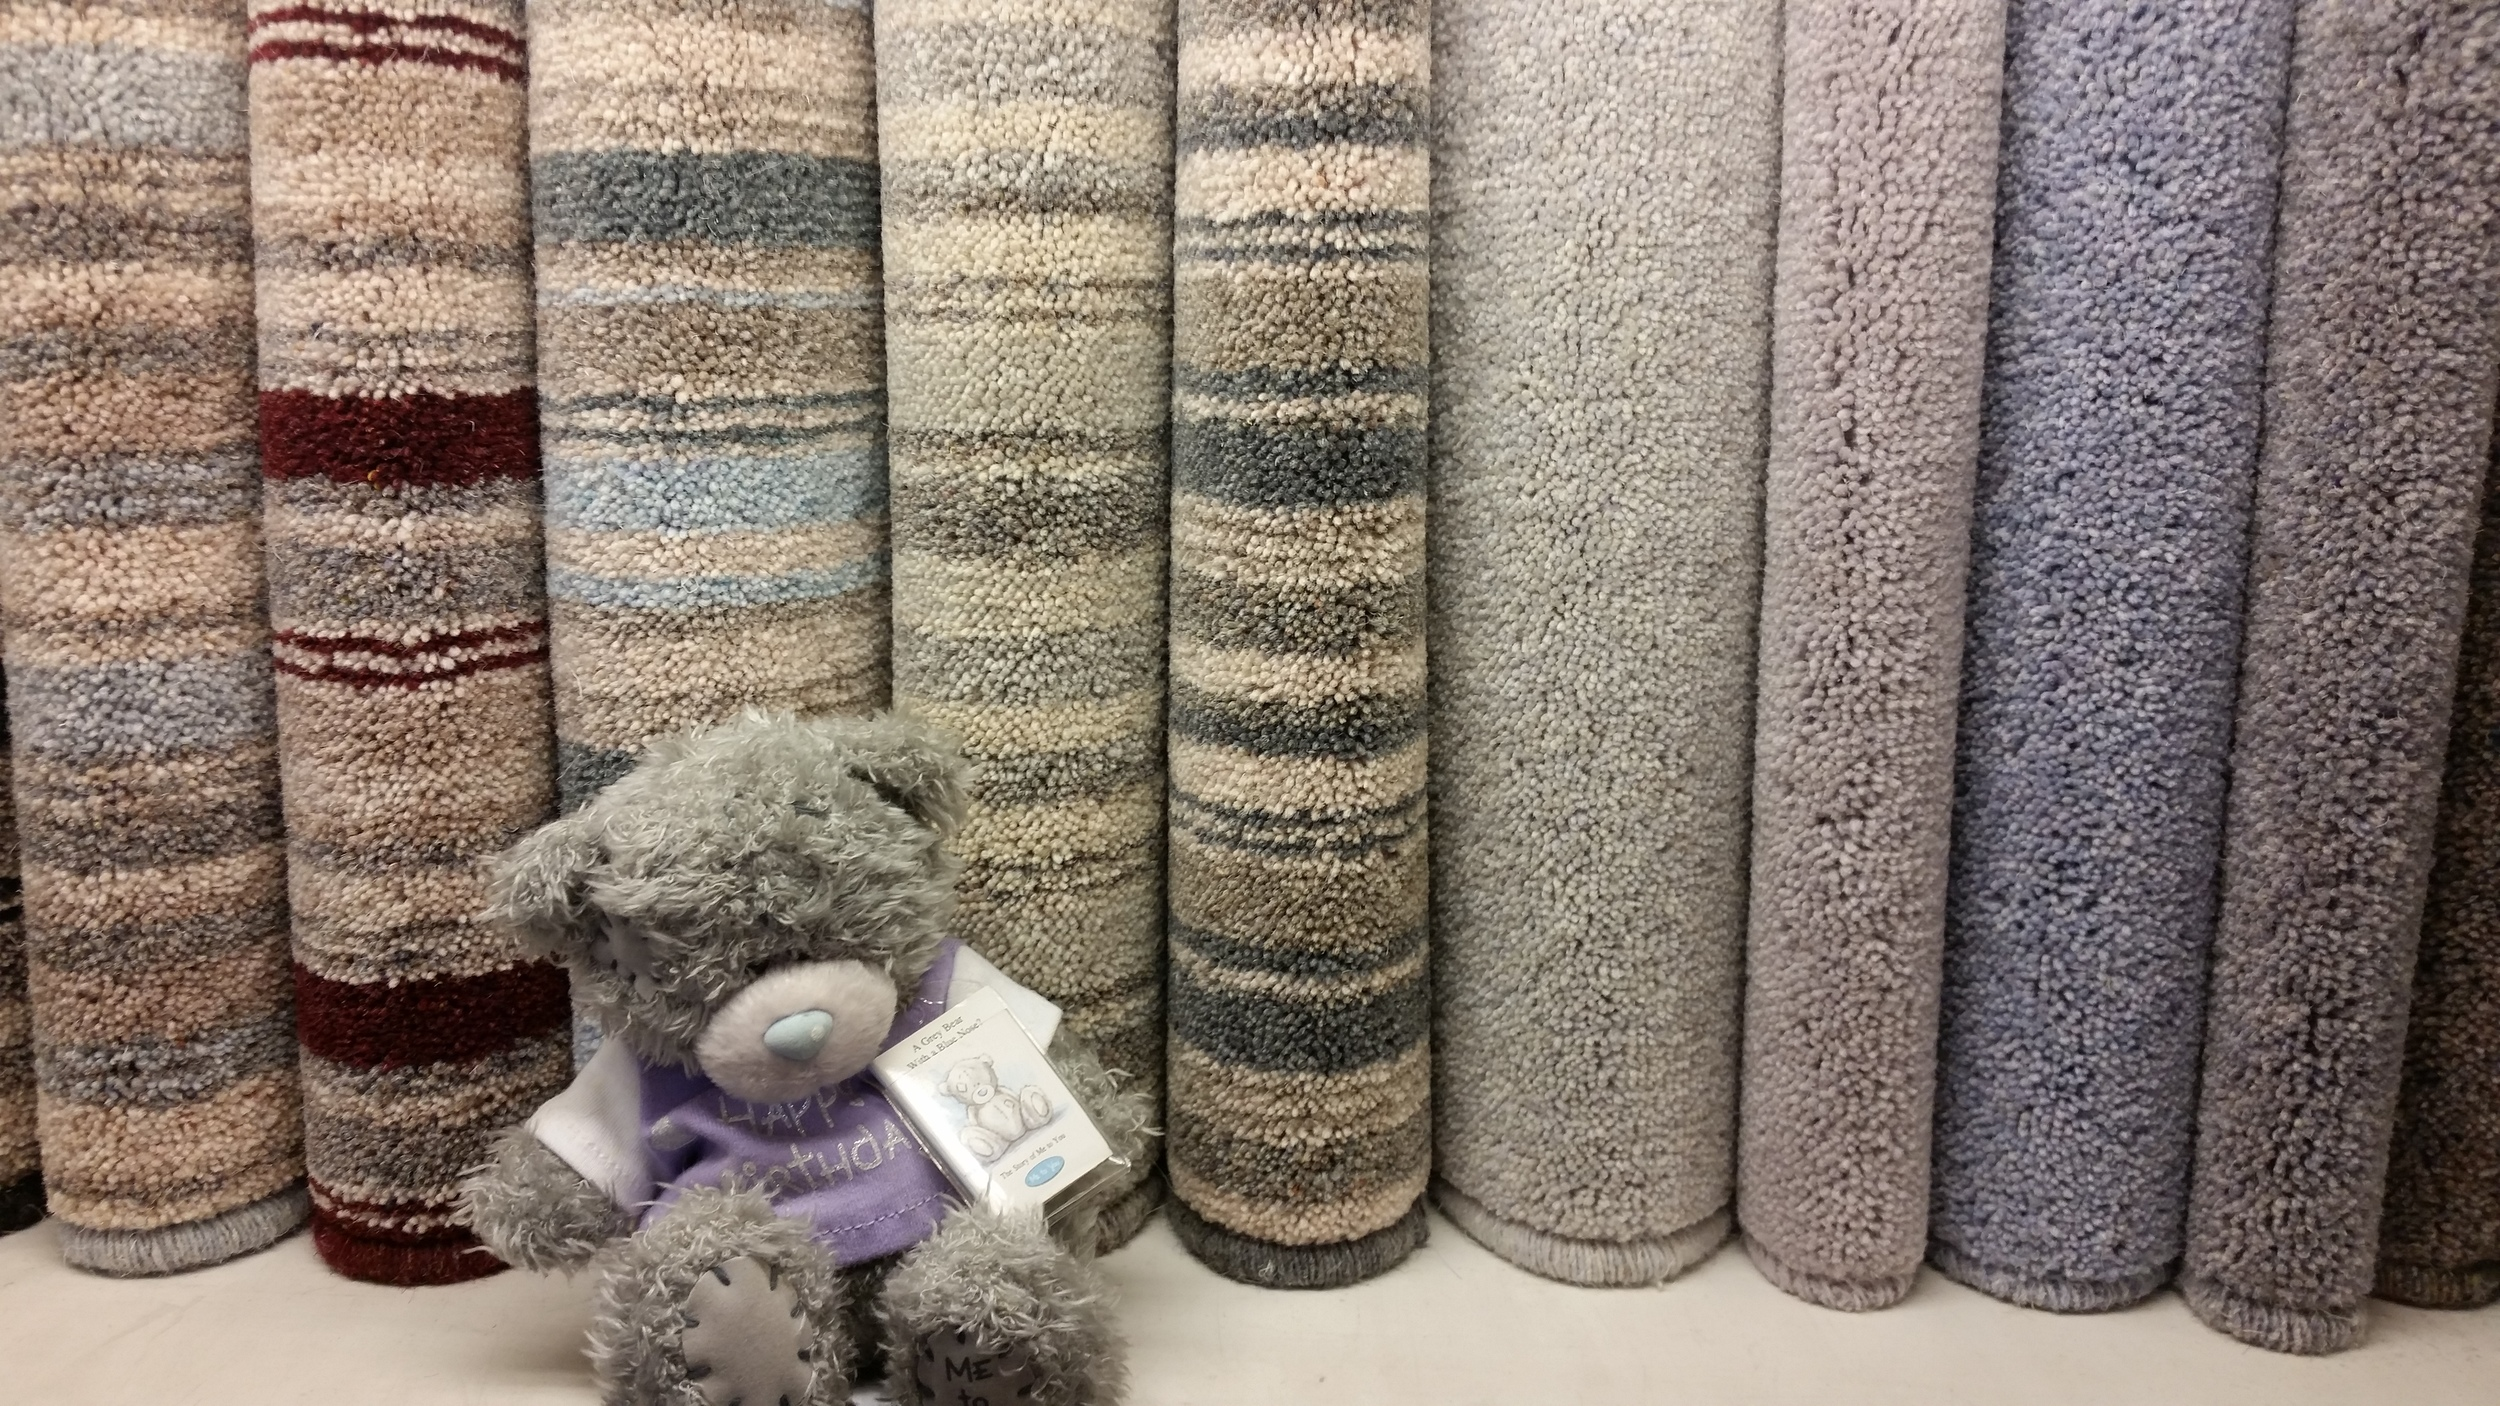 Gary The #Carpet Rep with our  Brockway  display.